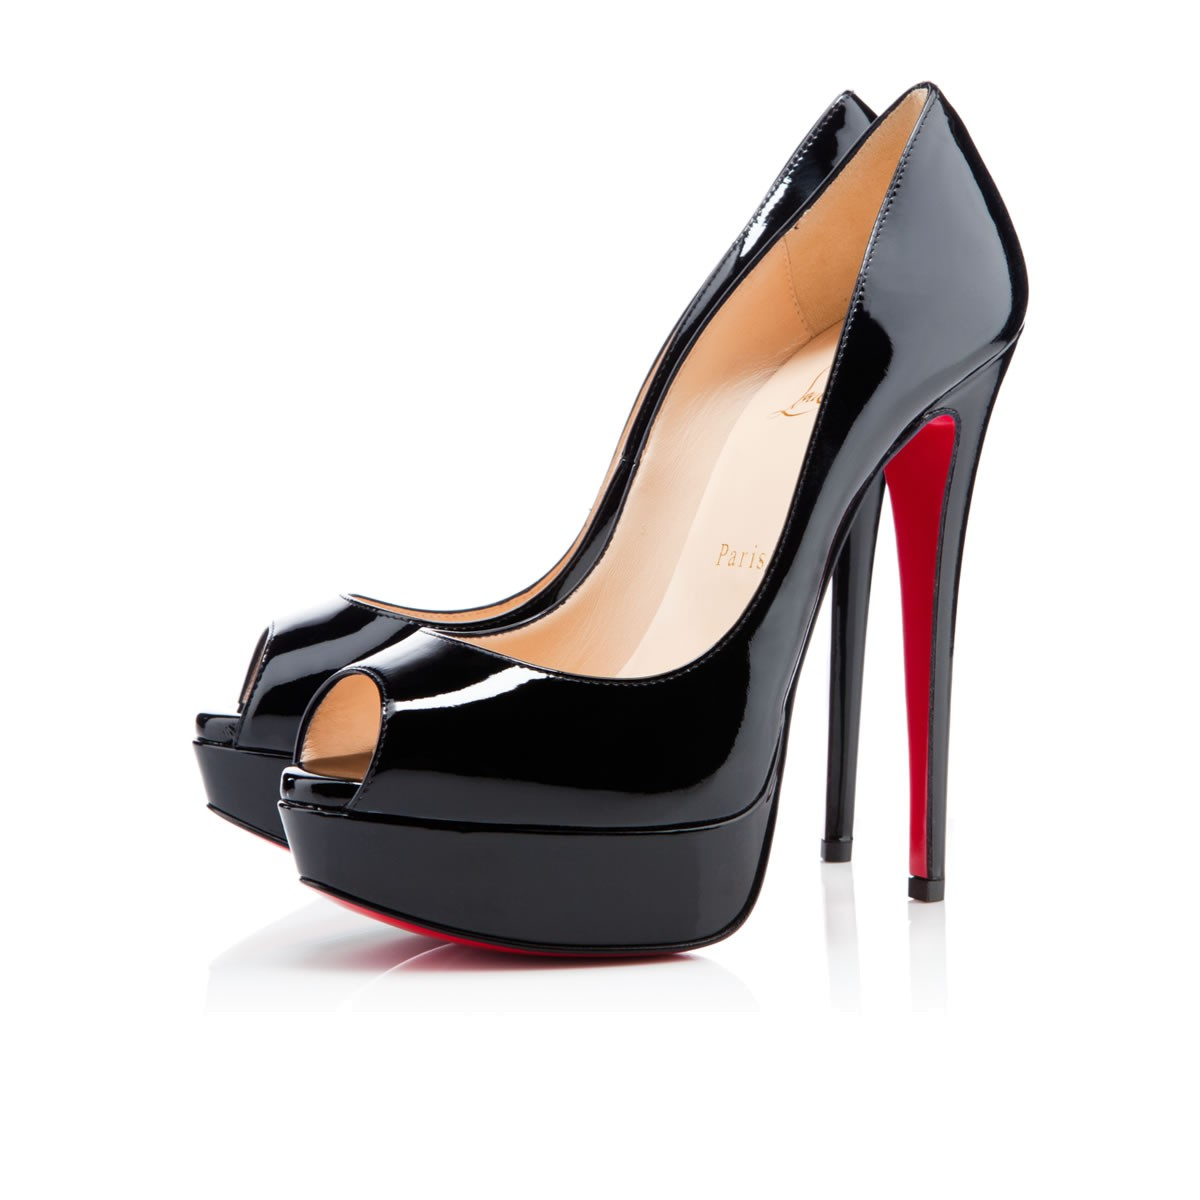 chaussures christian louboutin femme